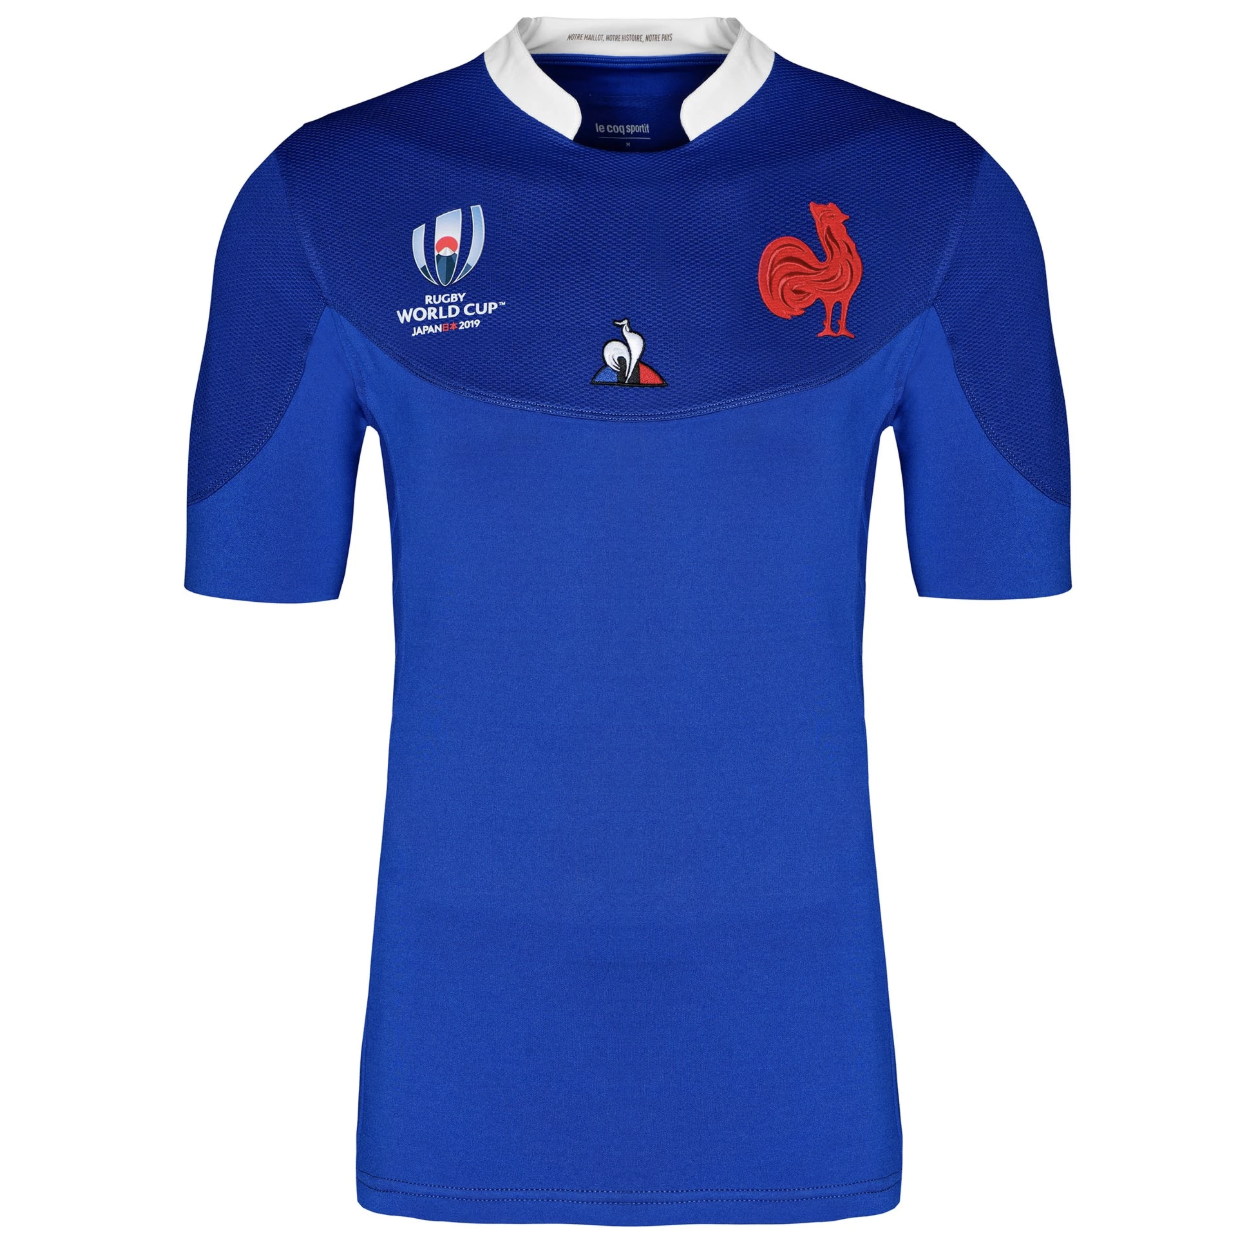 France Rugby World Cup 2019 Home Kit Cheap Soccer Jersey Rugby Jersey World Cup Shirts France Rugby